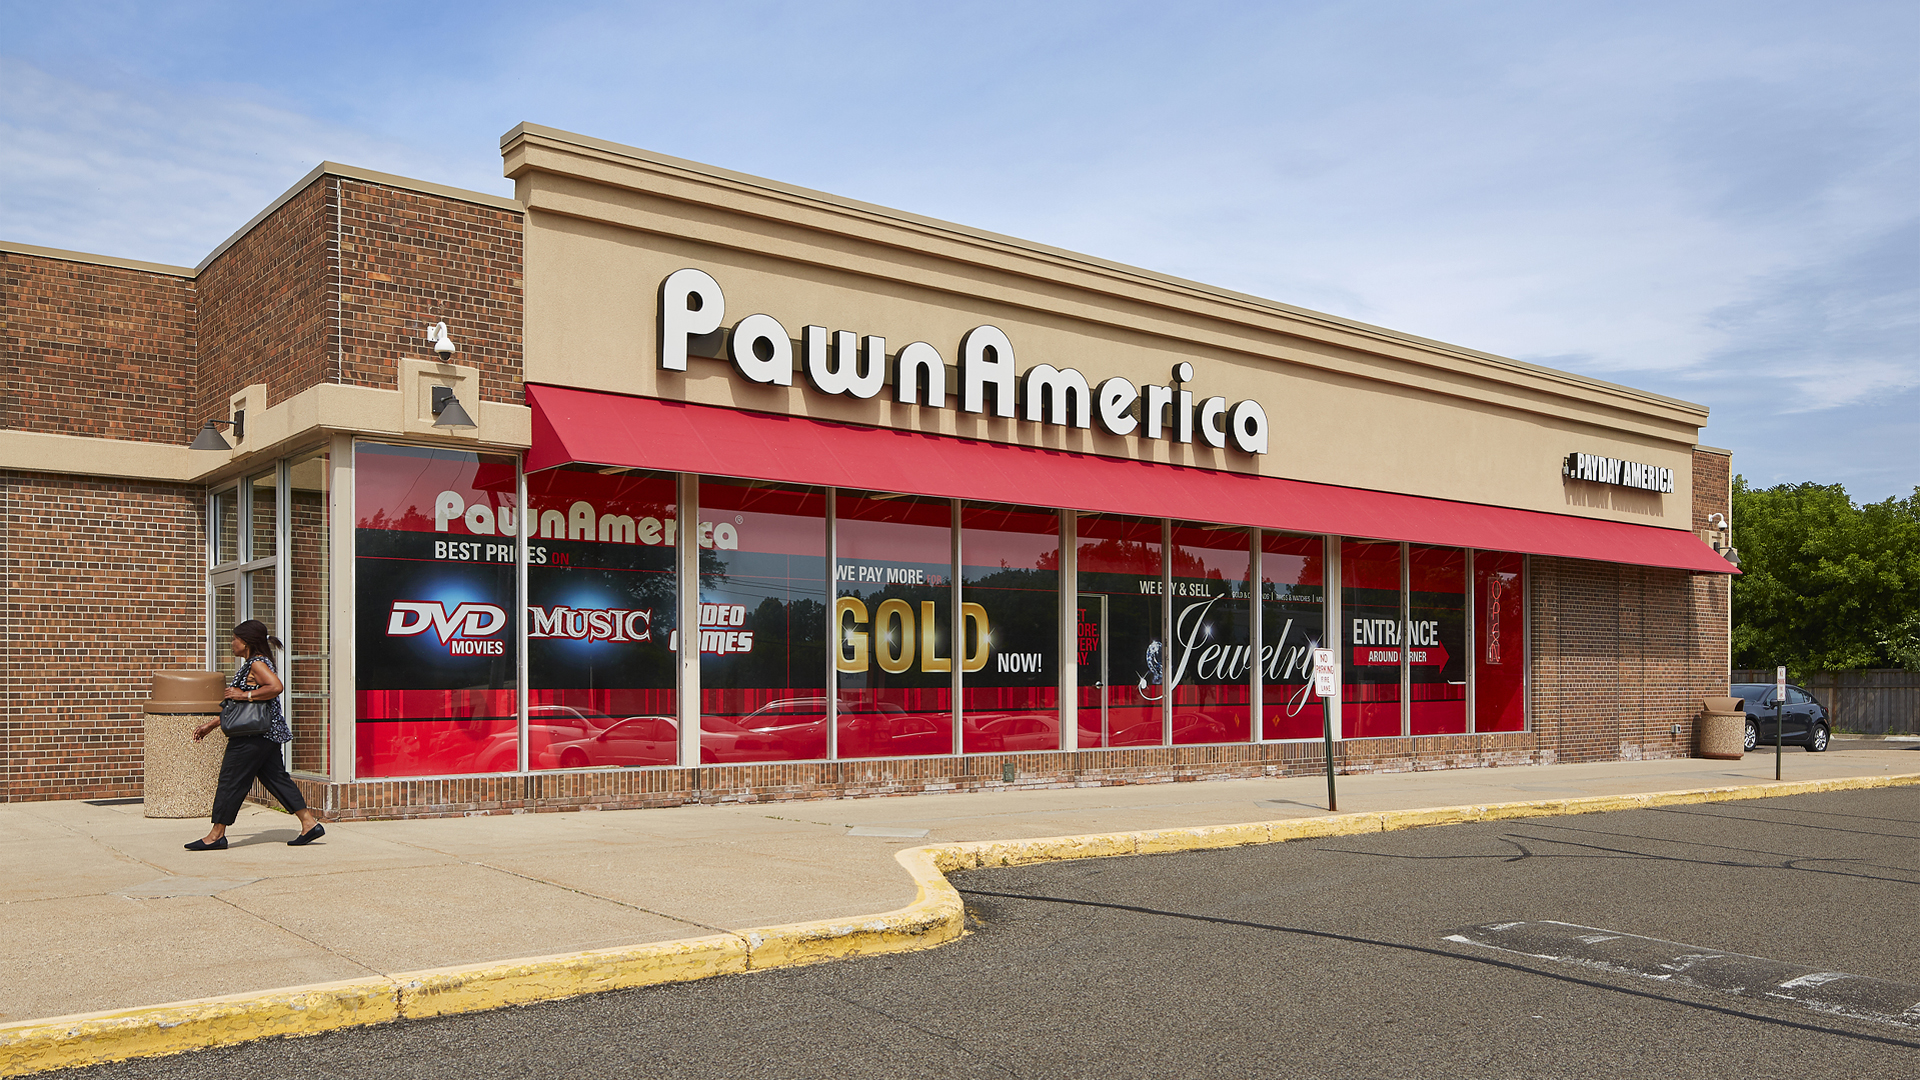 McCarron Hills Retail Shopping Center Roseville MN exterior view featuring Pawn America